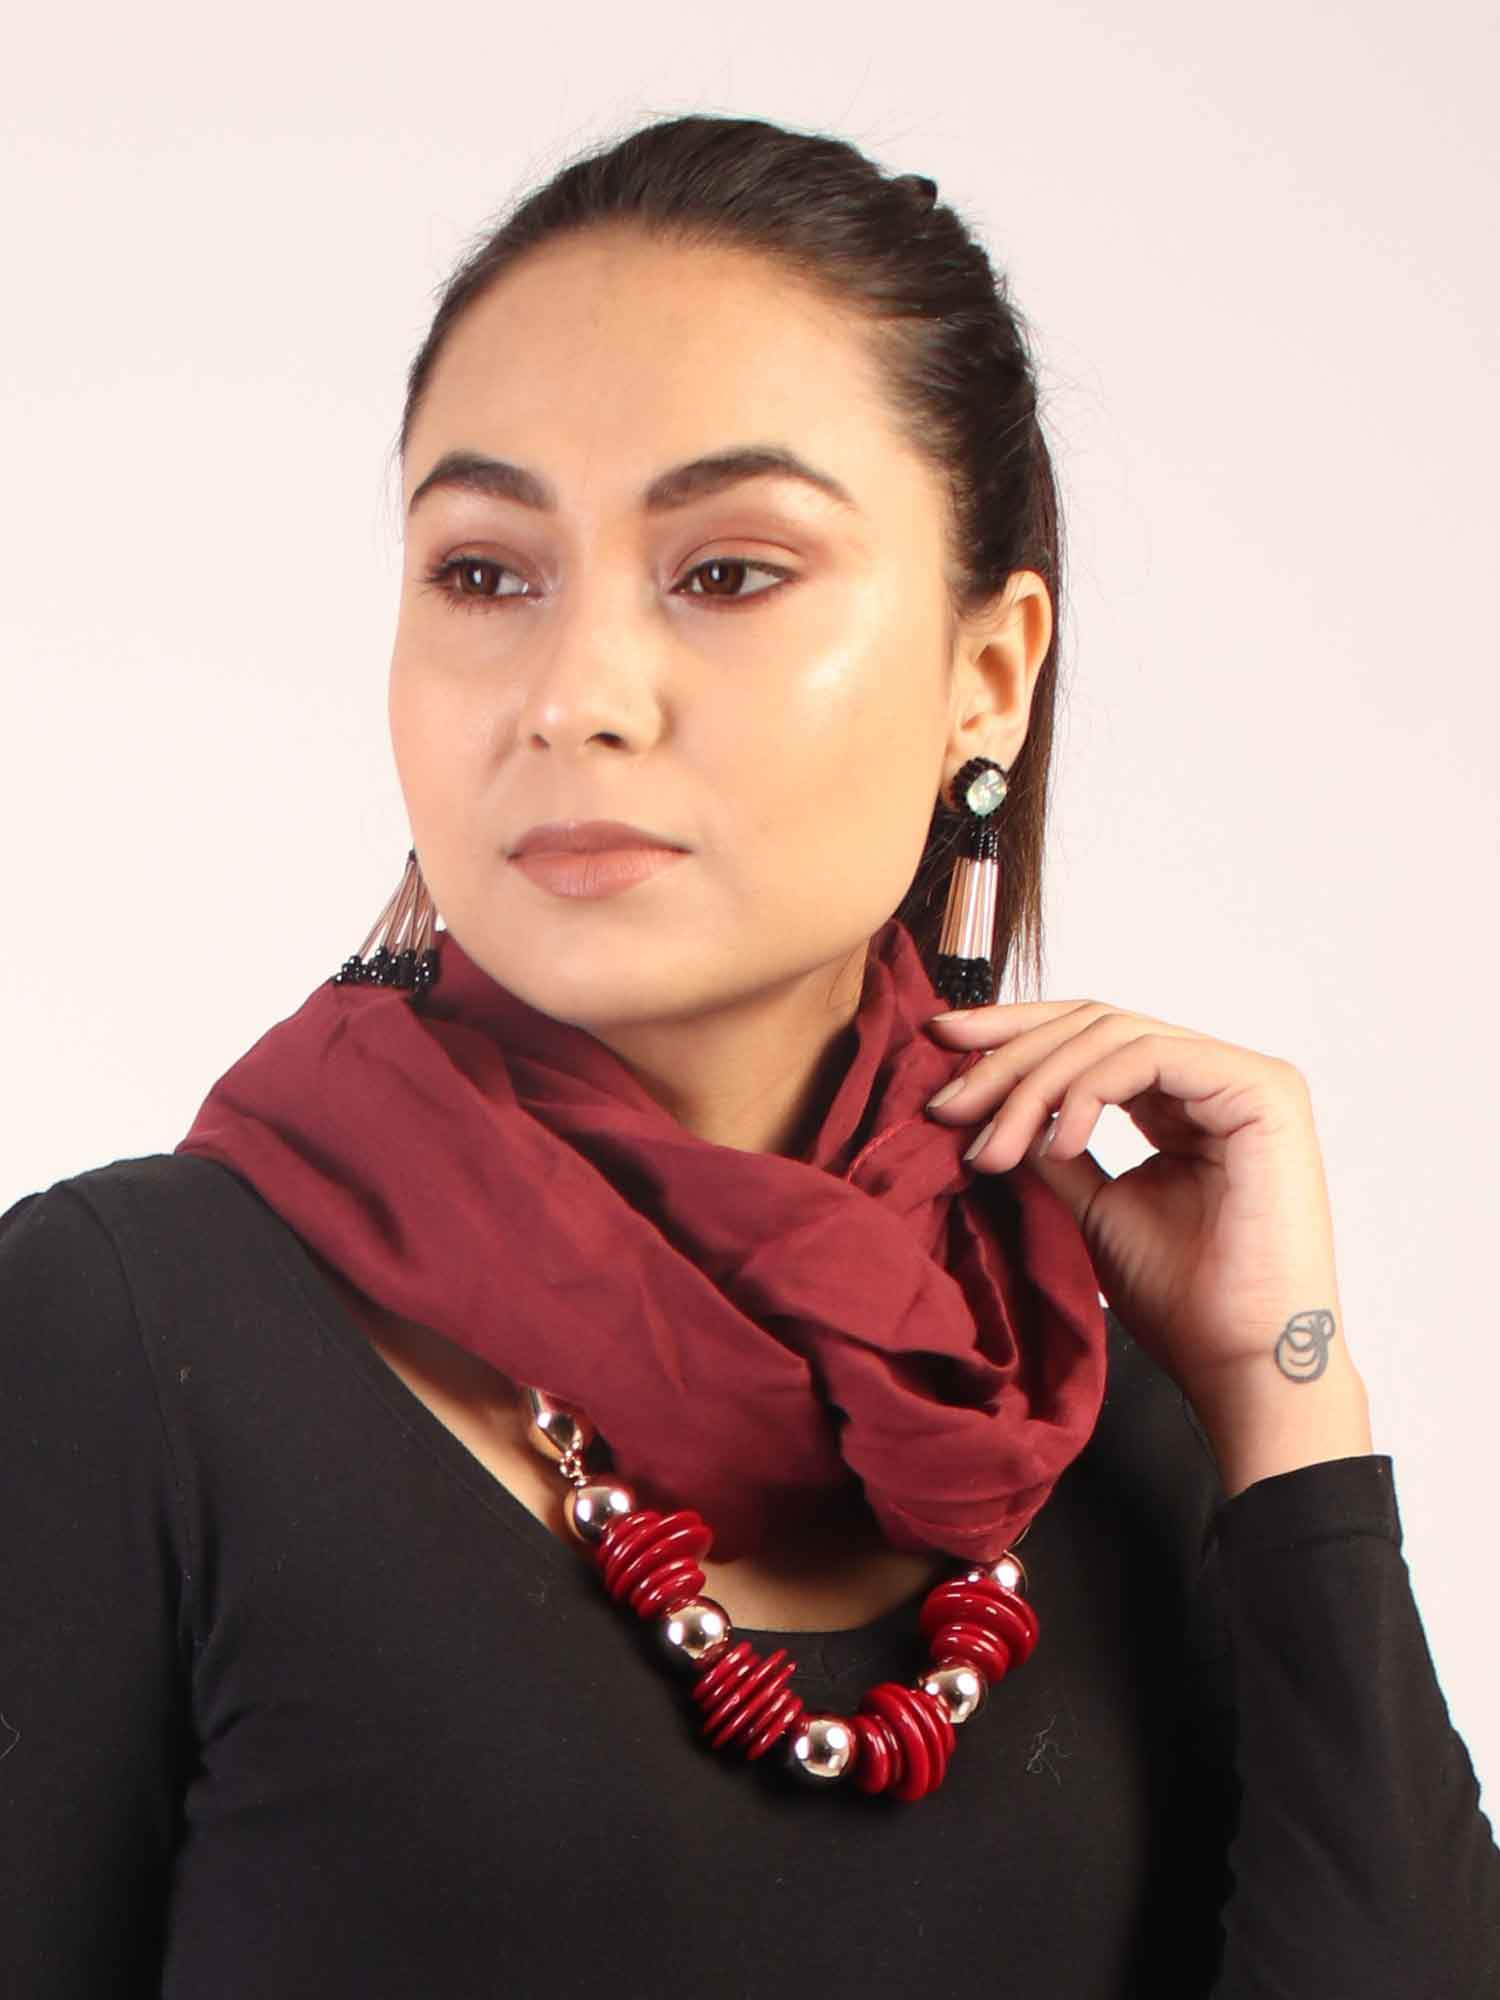 Maroon Infinity Scarf with Beads